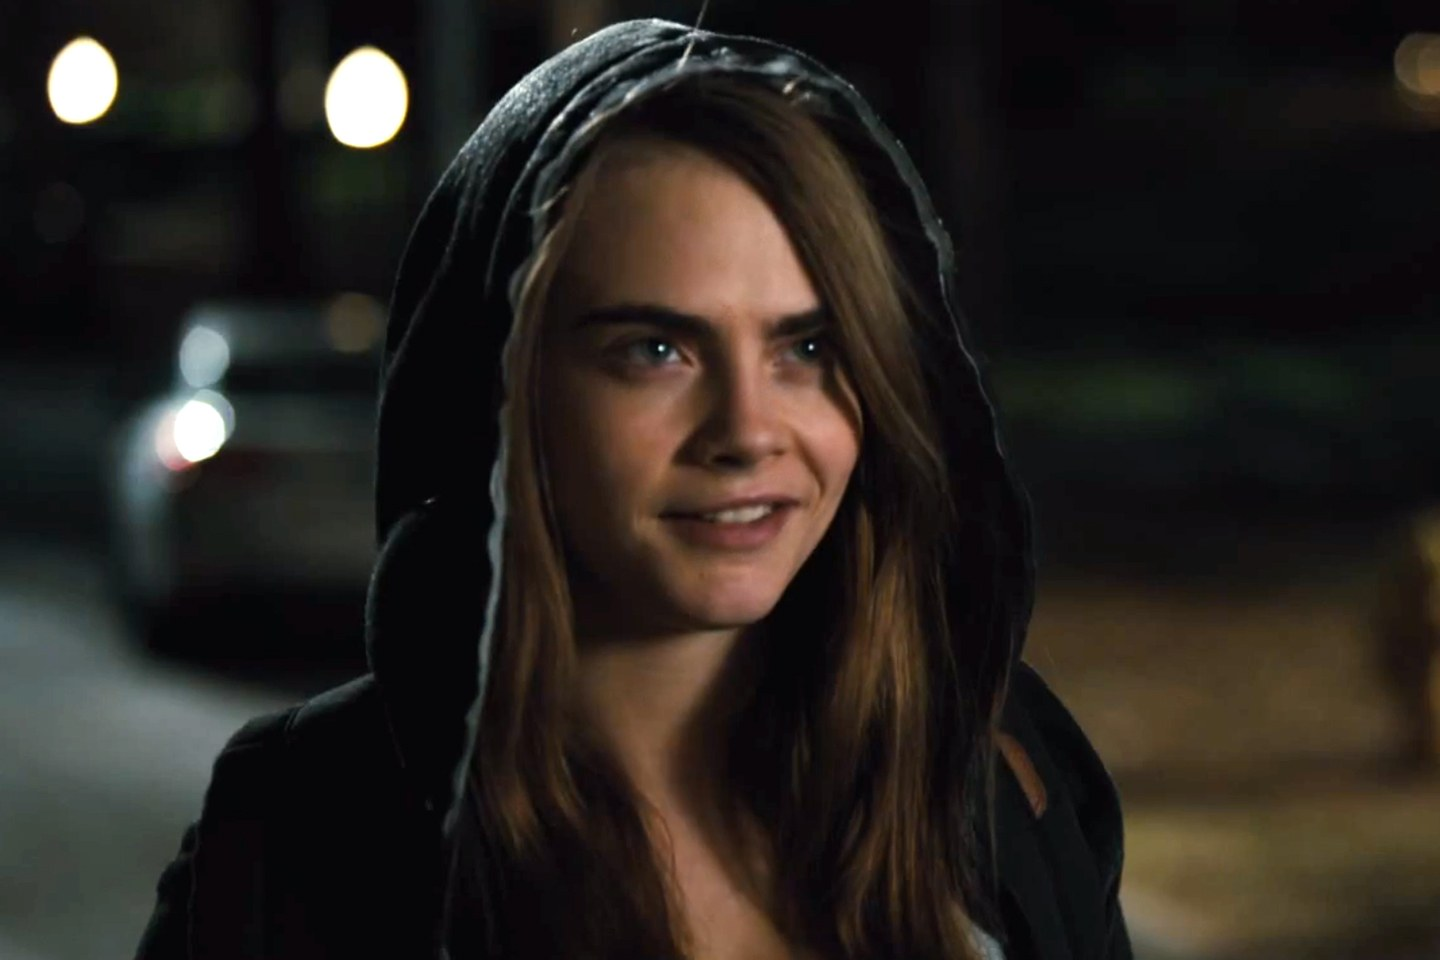 Cara Delevingne New Movie Upcoming Movies Tv Shows 2019 2020